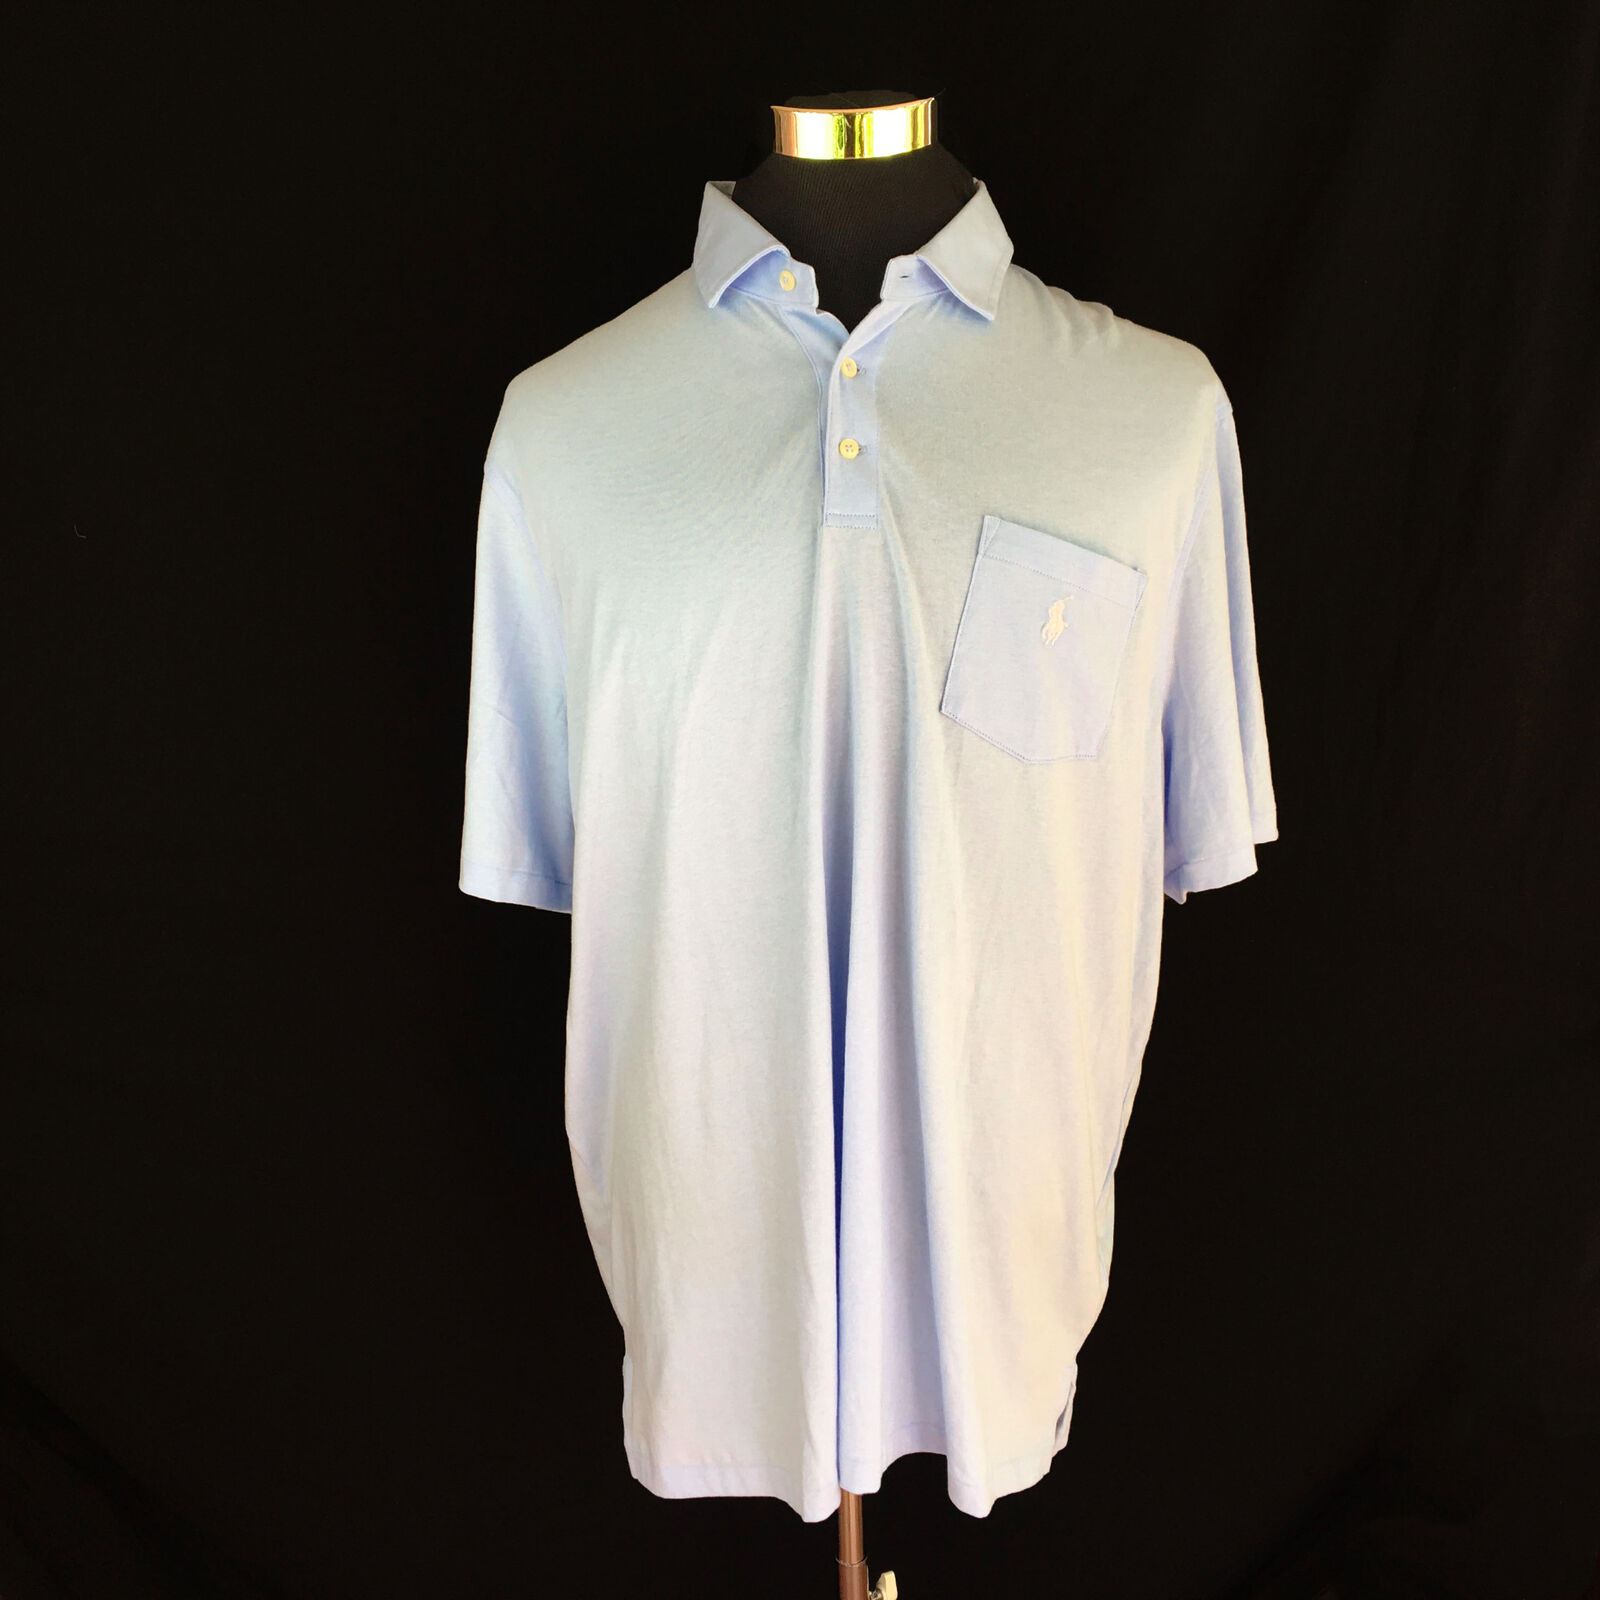 NEW Polo Ralph Lauren Shirt Classic Fit Light bluee Solid White Pony Various Size